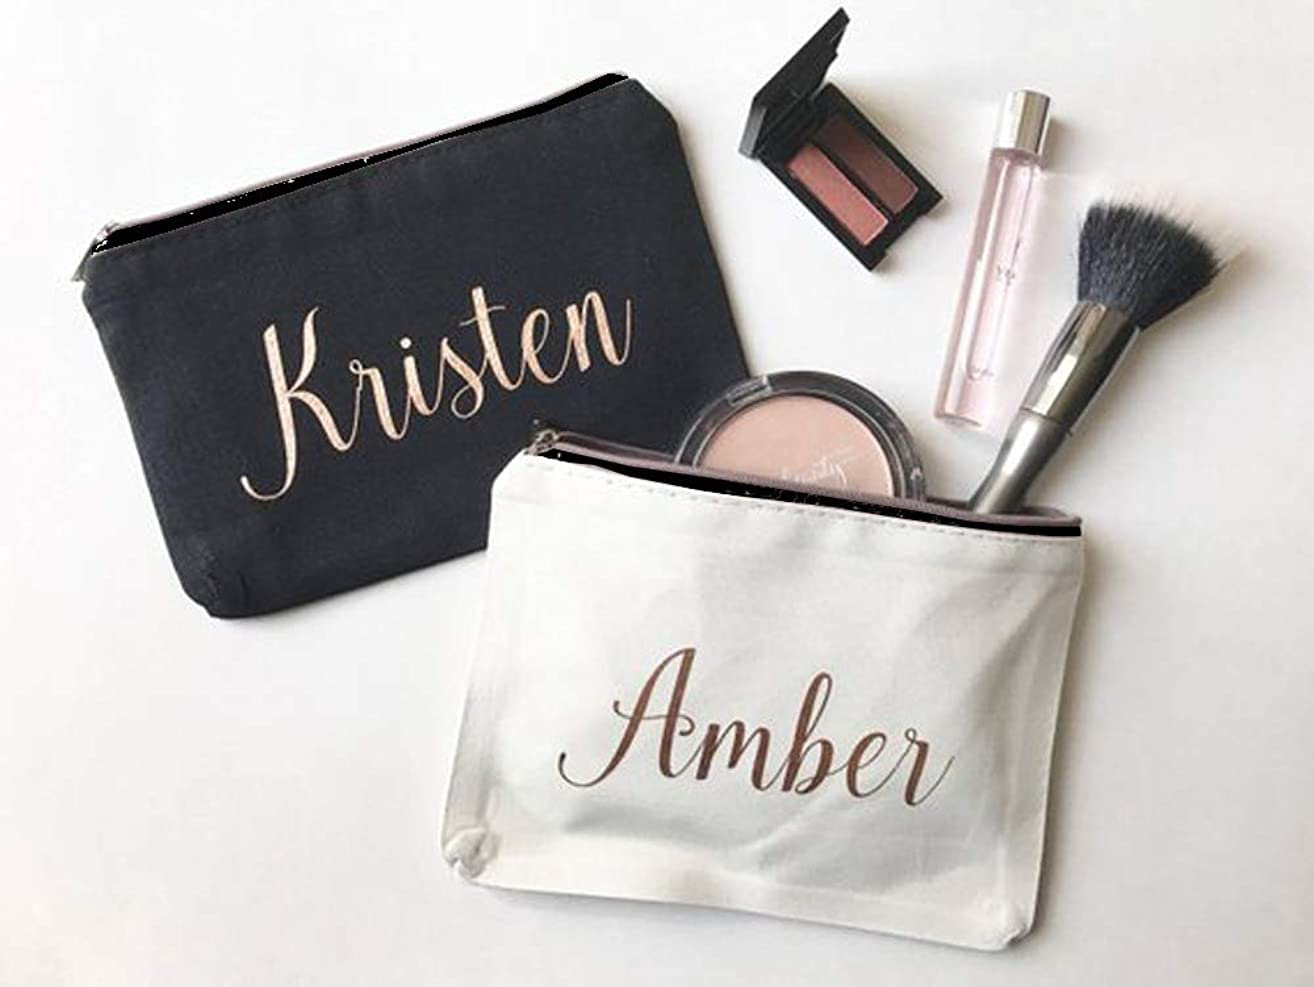 High quality Personalized Makeup Bag, Bridesmaids Gift, Custom Cosmetic Bag, Rose Gold, Gifts for Her, Bridal Party Presents, Customizable. Price for one bag